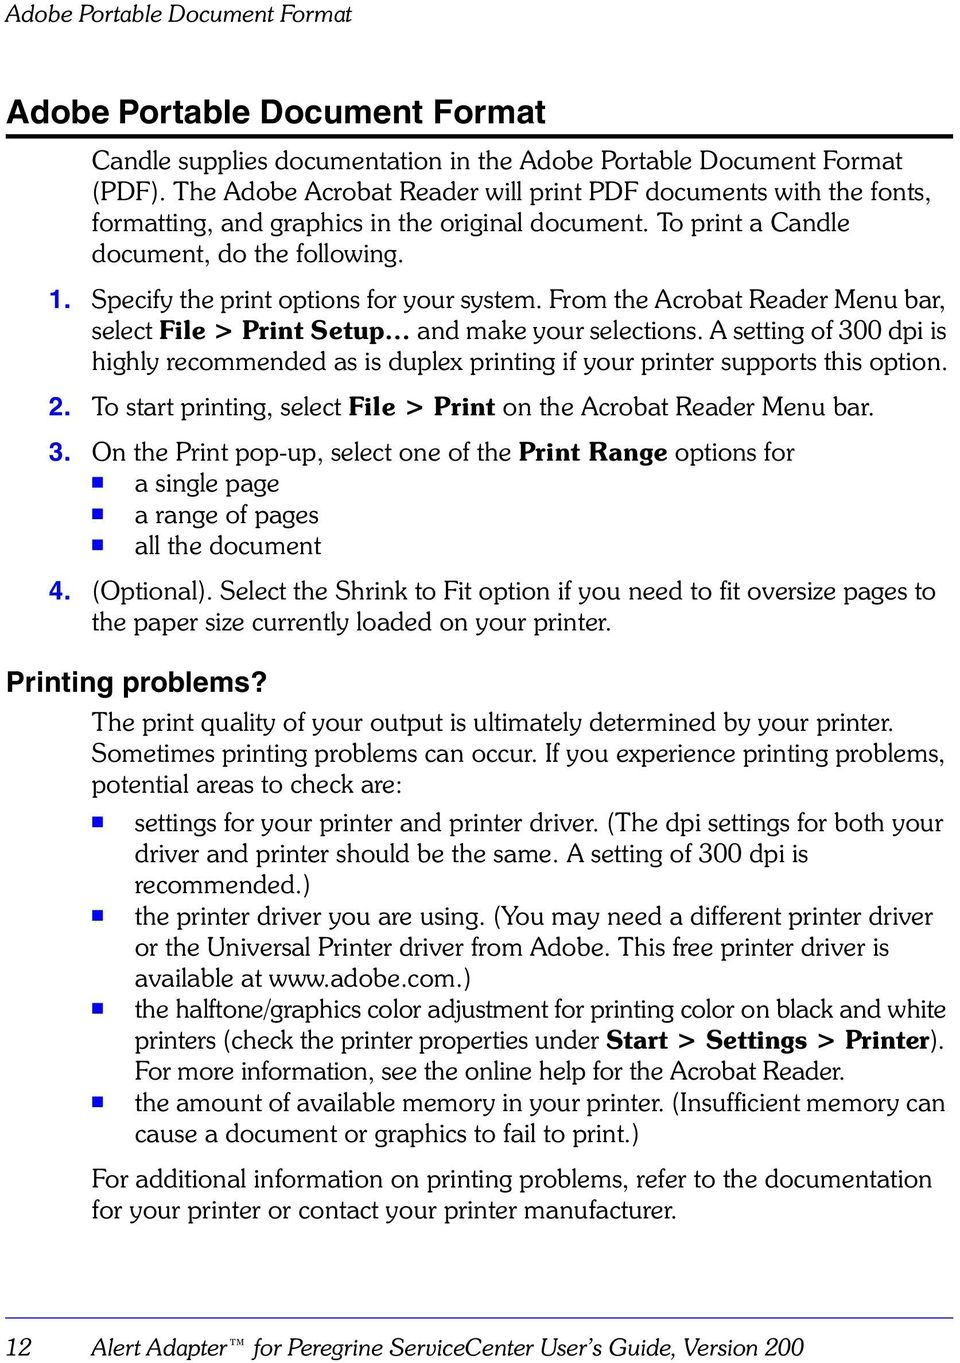 Specify the print options for your system. From the Acrobat Reader Menu bar, select File > Print Setup and make your selections.